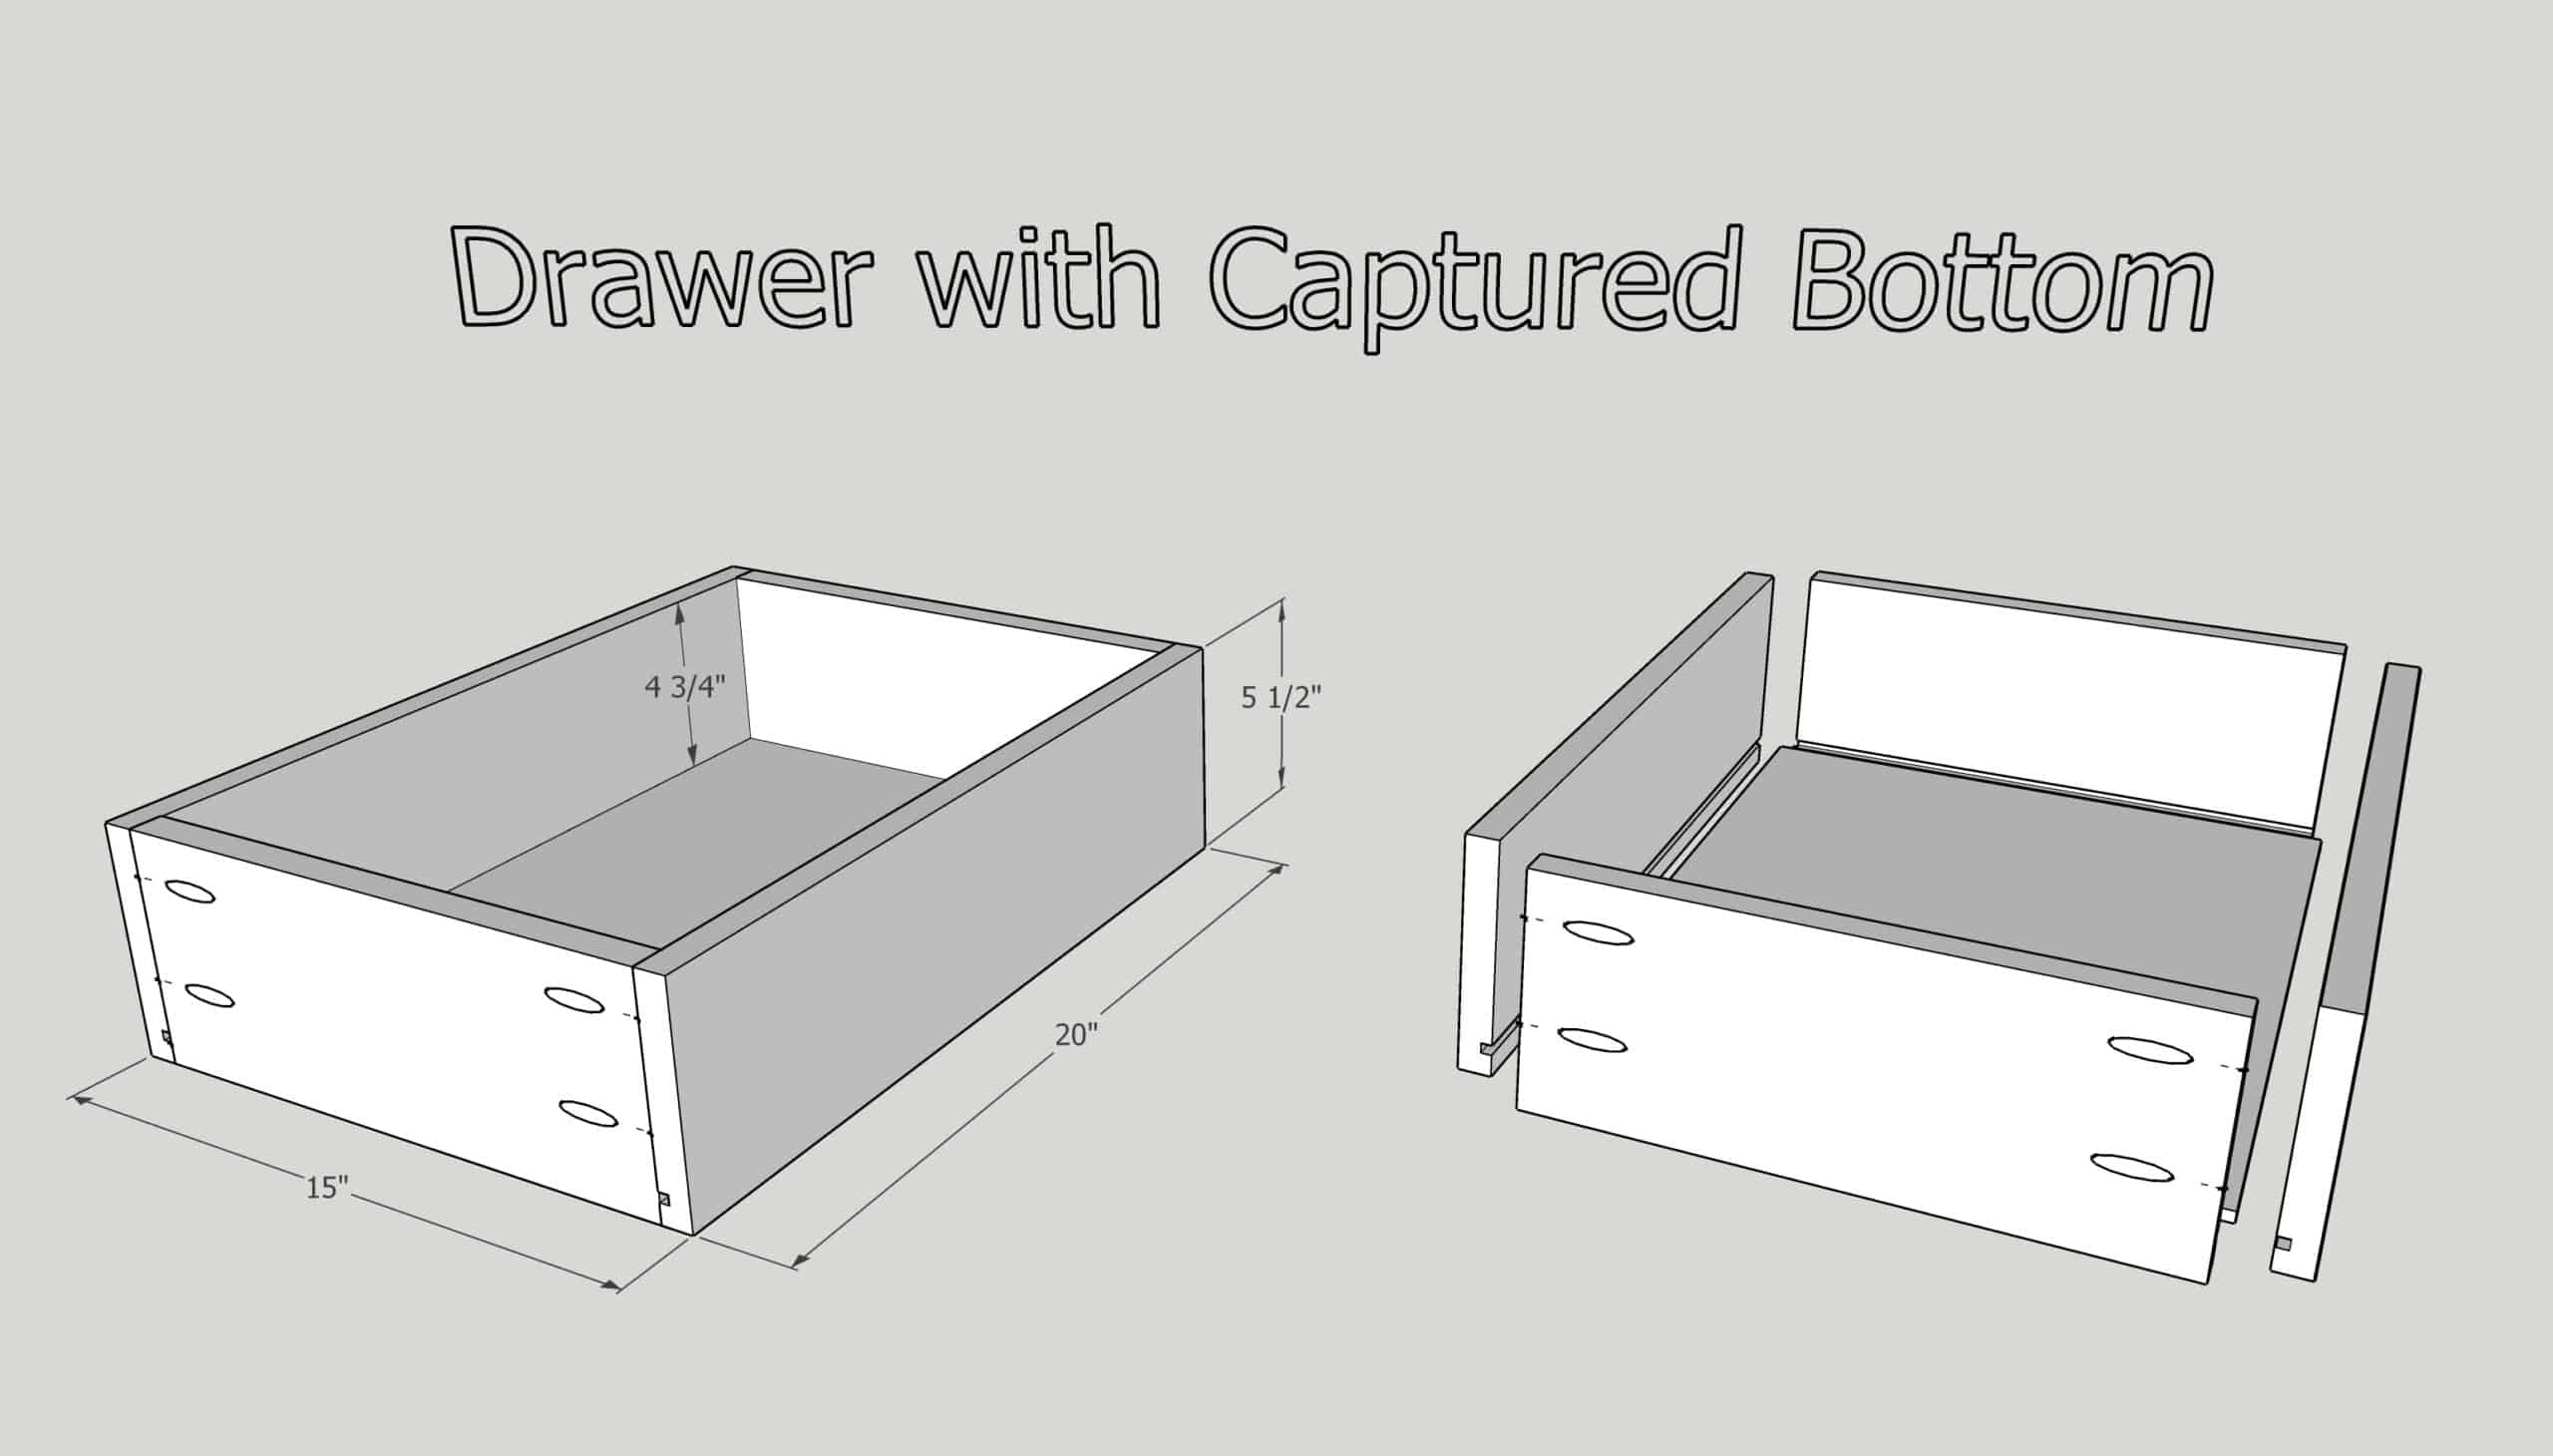 how to build a drawer with a captured bottom